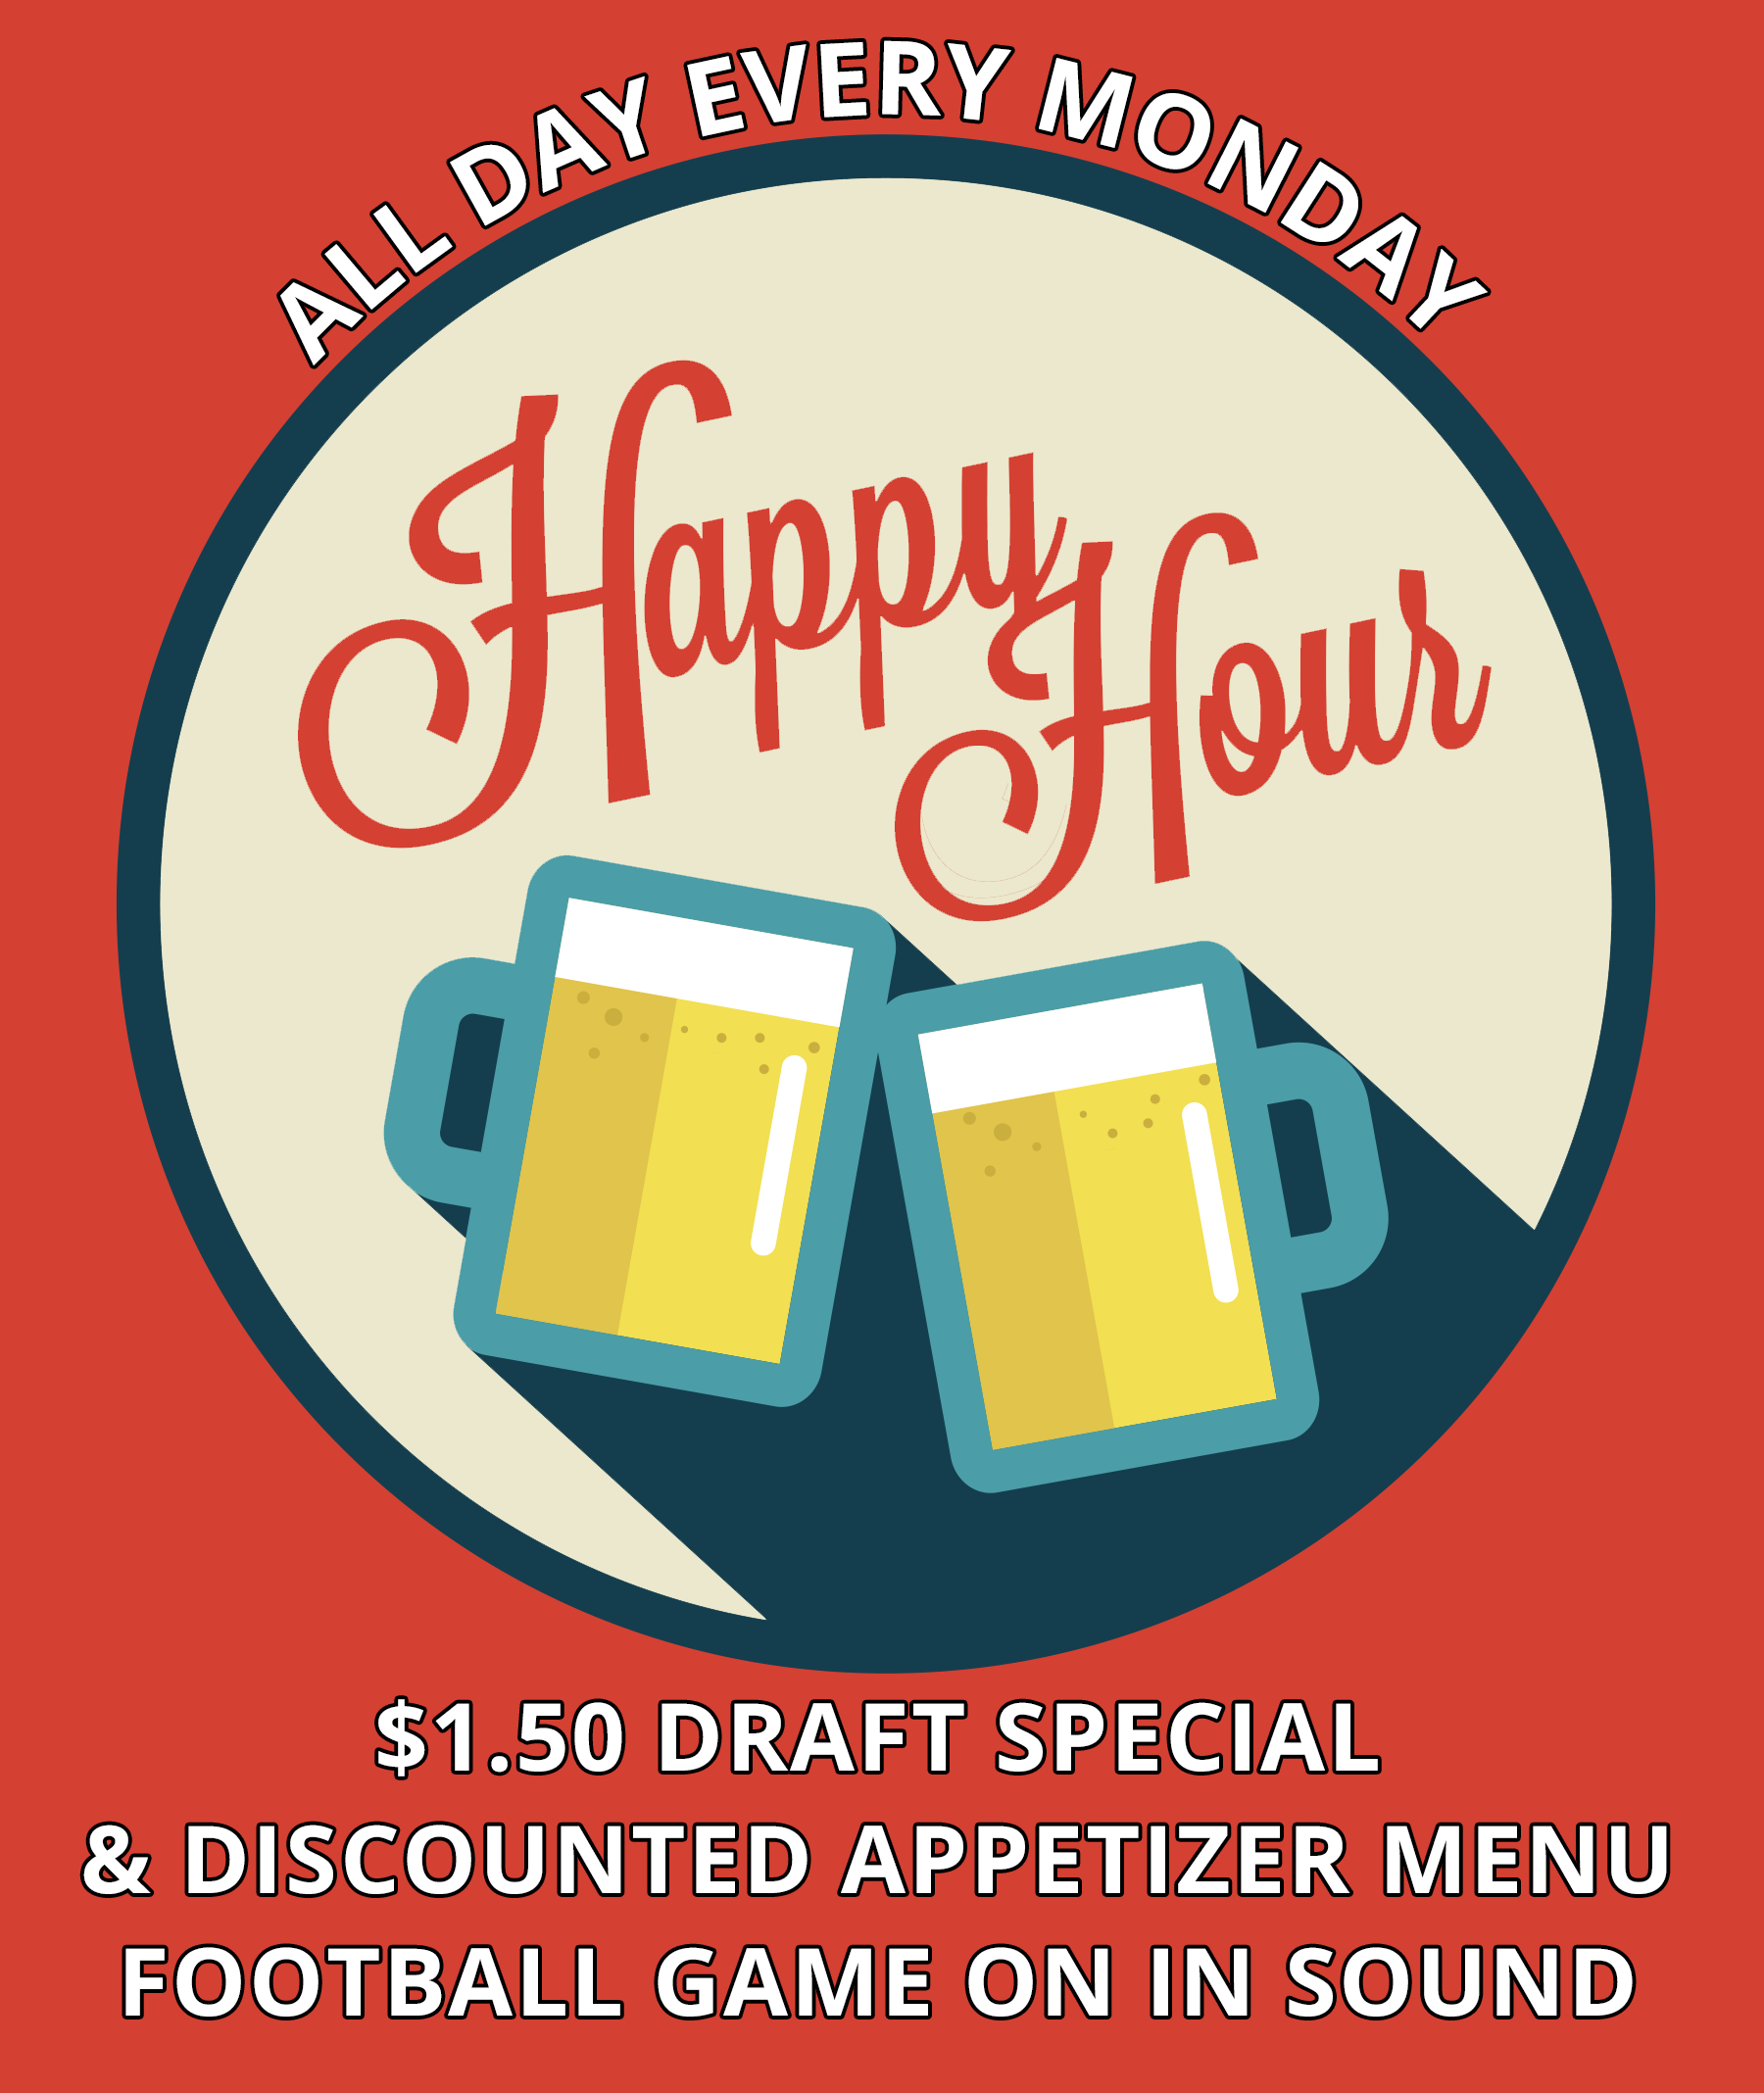 All day every Monday. Happy hour! $1.50 draft special and discounted appetizer menu. Football game on in sound.